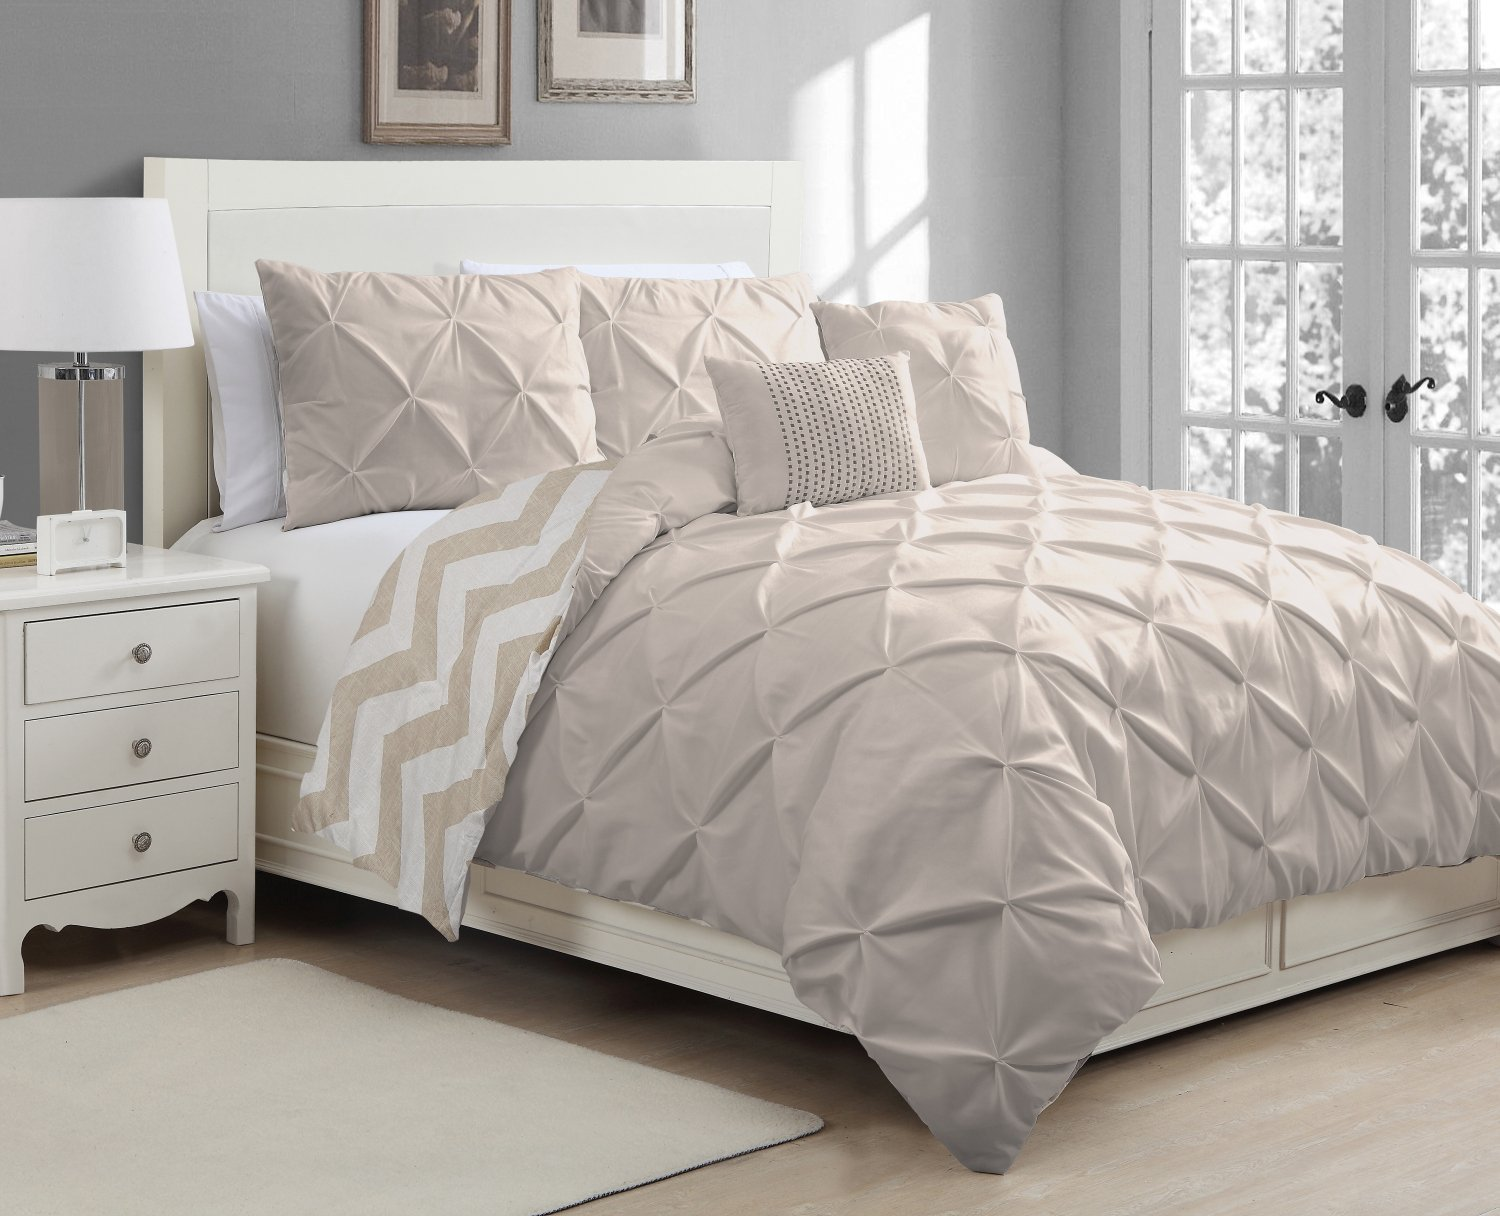 elm duvet set cover idea home regard west shams with white inside pintuck victoria apparel to pinched plan cotton organic